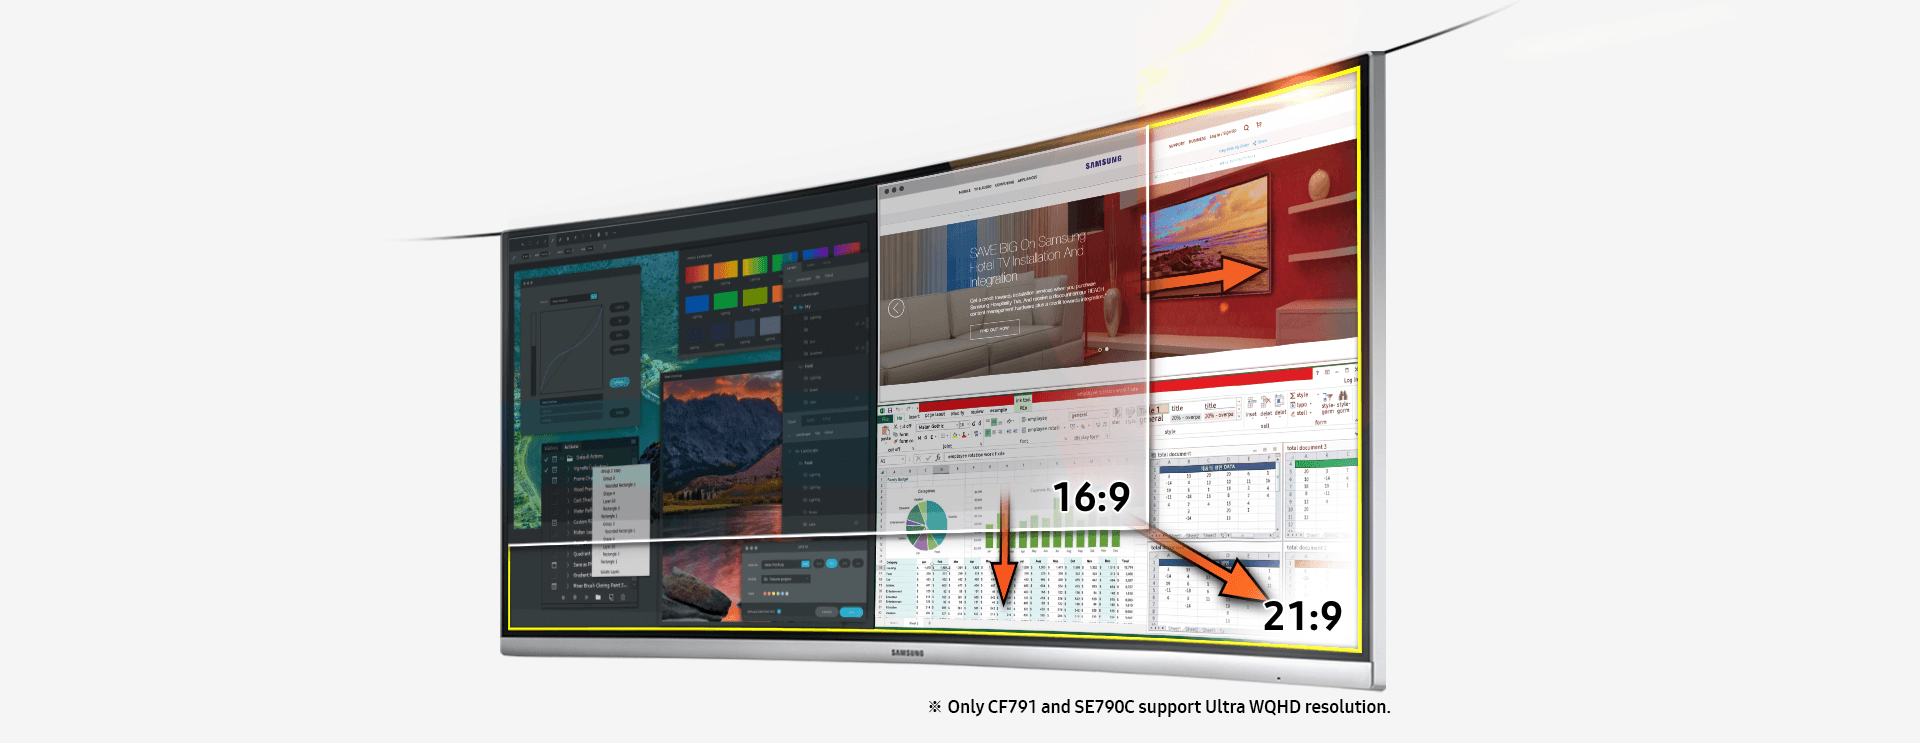 Image showing Samsung curved monitor, which has ultra WQHD 21:9 screen ratio compared to 16:9 of conventional monitor. ※ Only CF791 and SE790C support Ultra WQHD resolution.